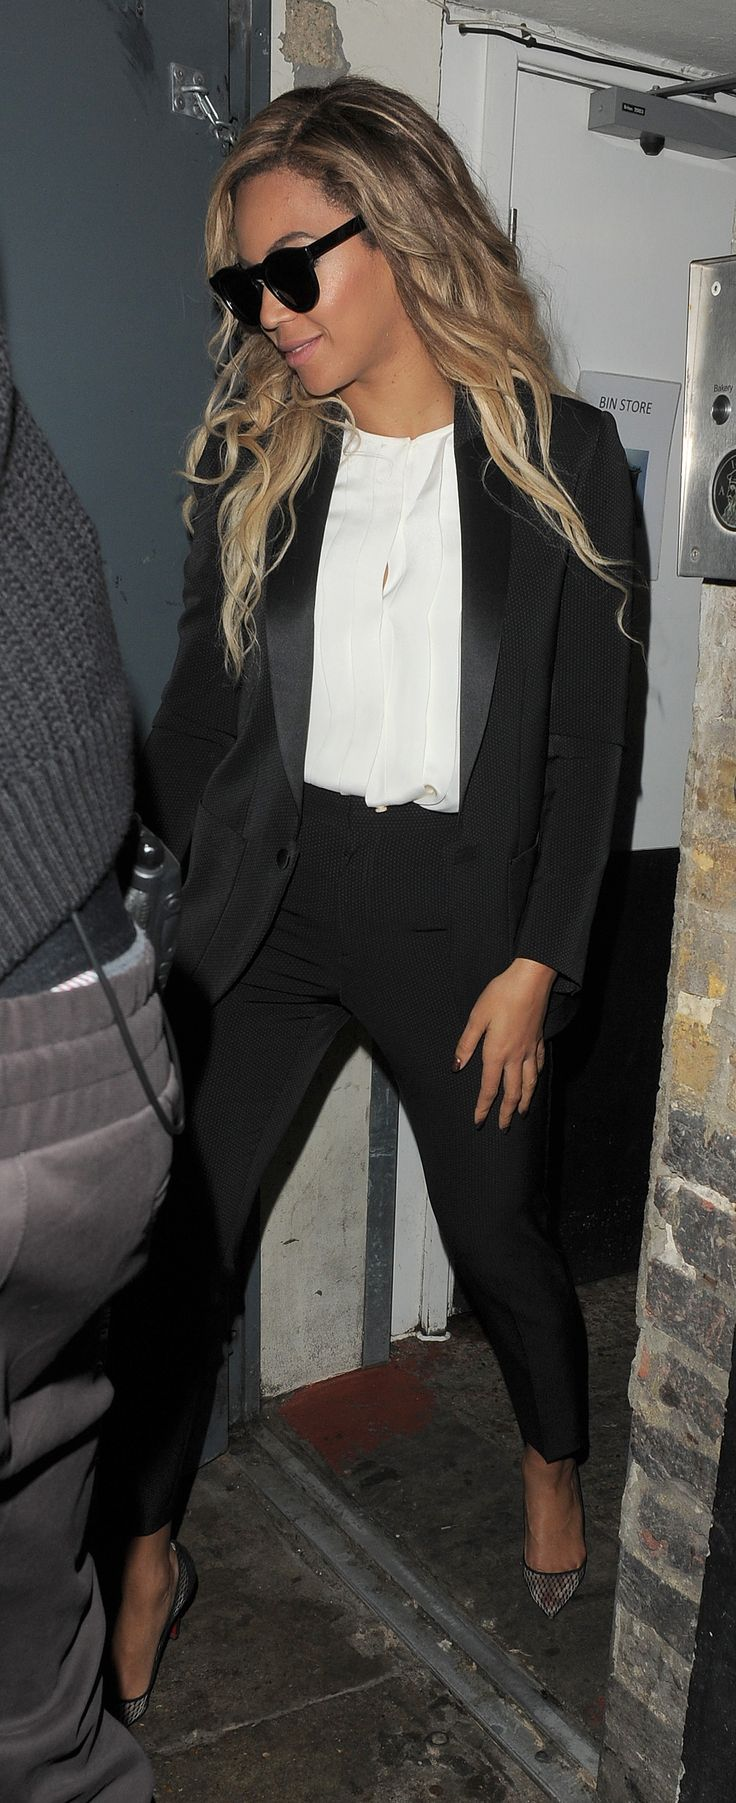 Beyonce Syle: Classy and Stylish in 64 Outfits